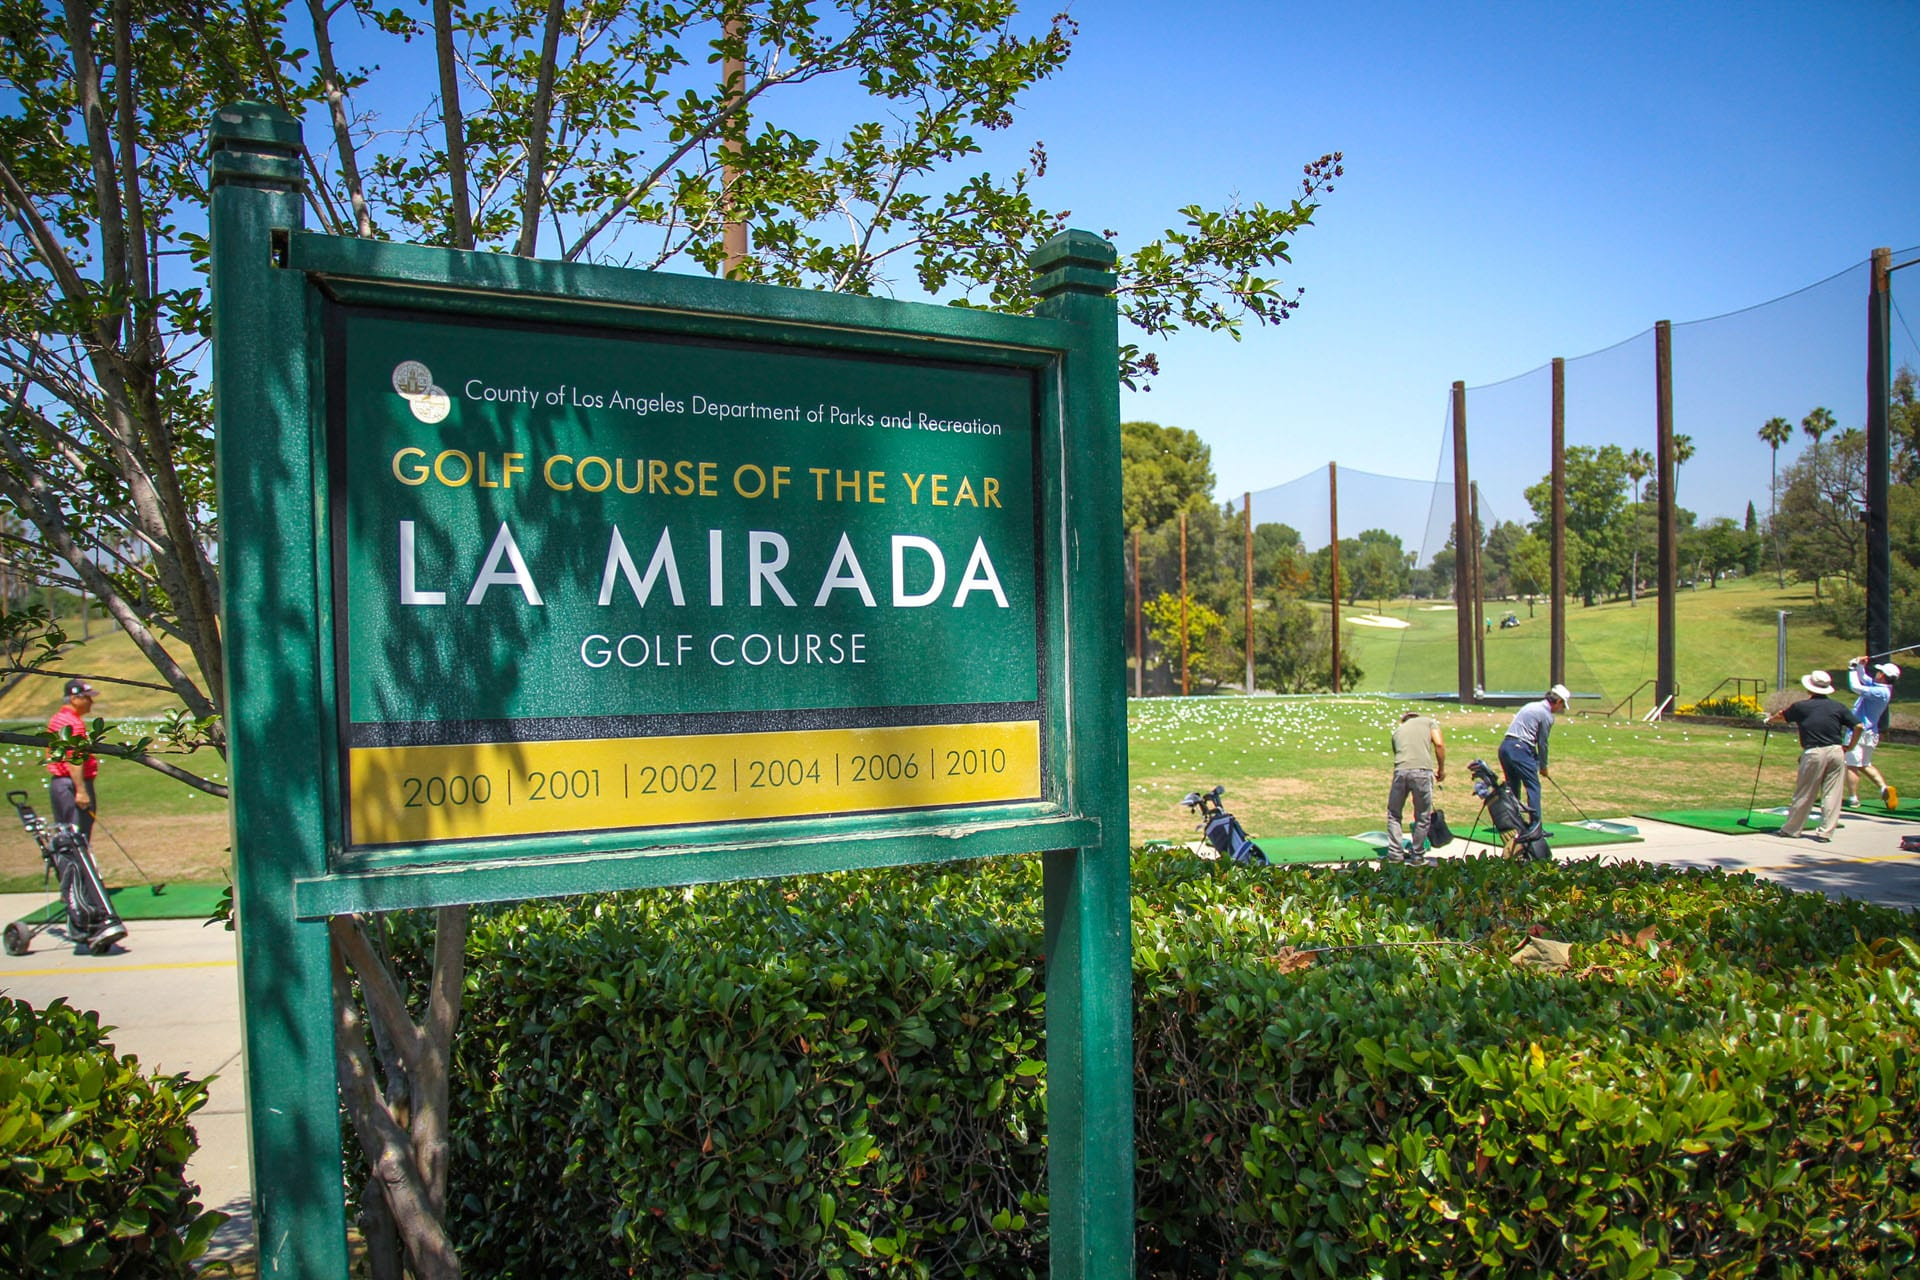 La Mirada Golf Course sign